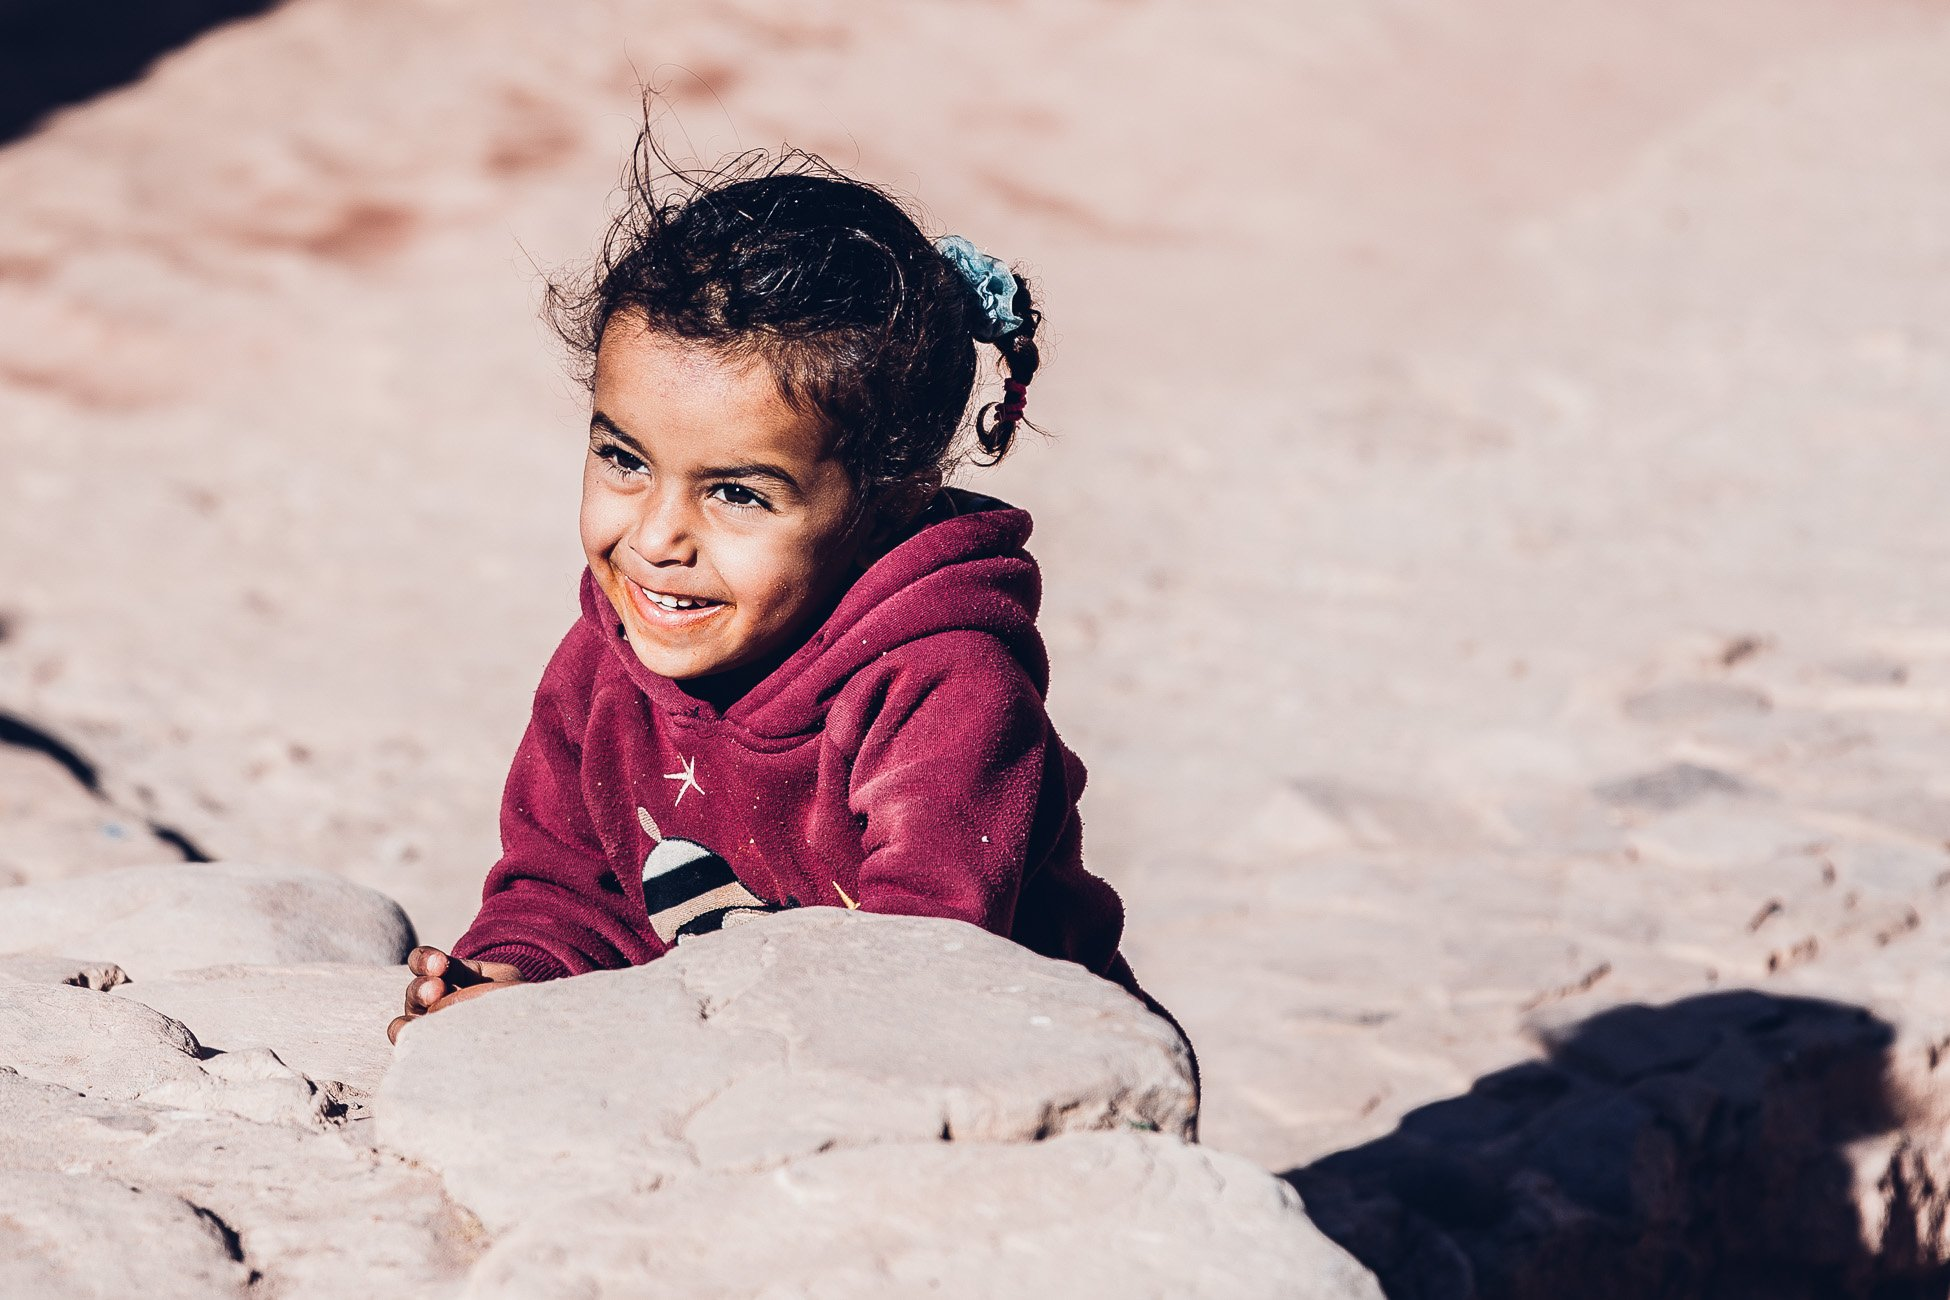 Bedouin girl in Petra Jordan